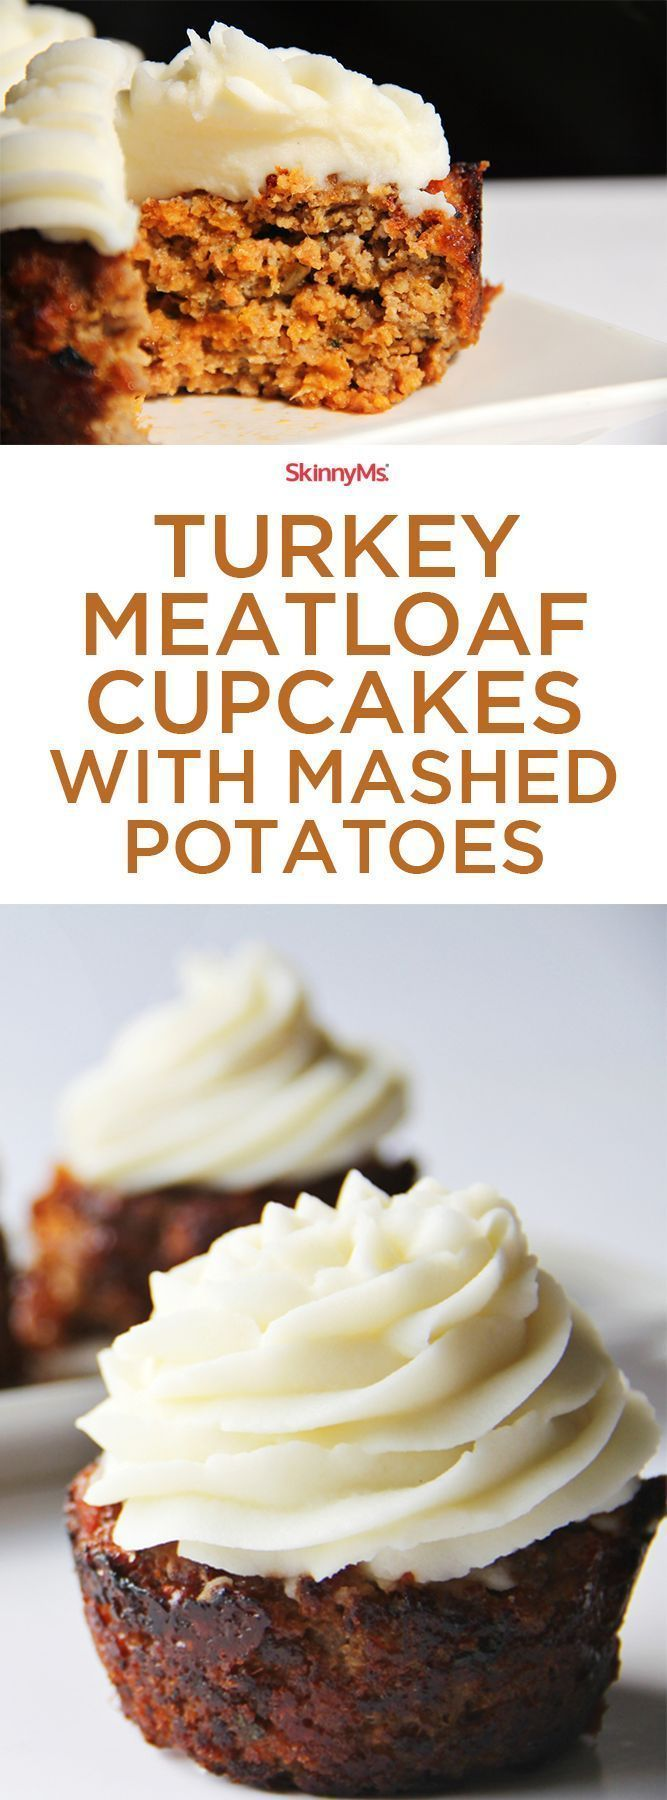 Nutritious cupcakes for dinner? You know it! These Turkey Meatloaf Cupcakes with Mashed Potatoes are guaranteed to be a hit! #cleaneating